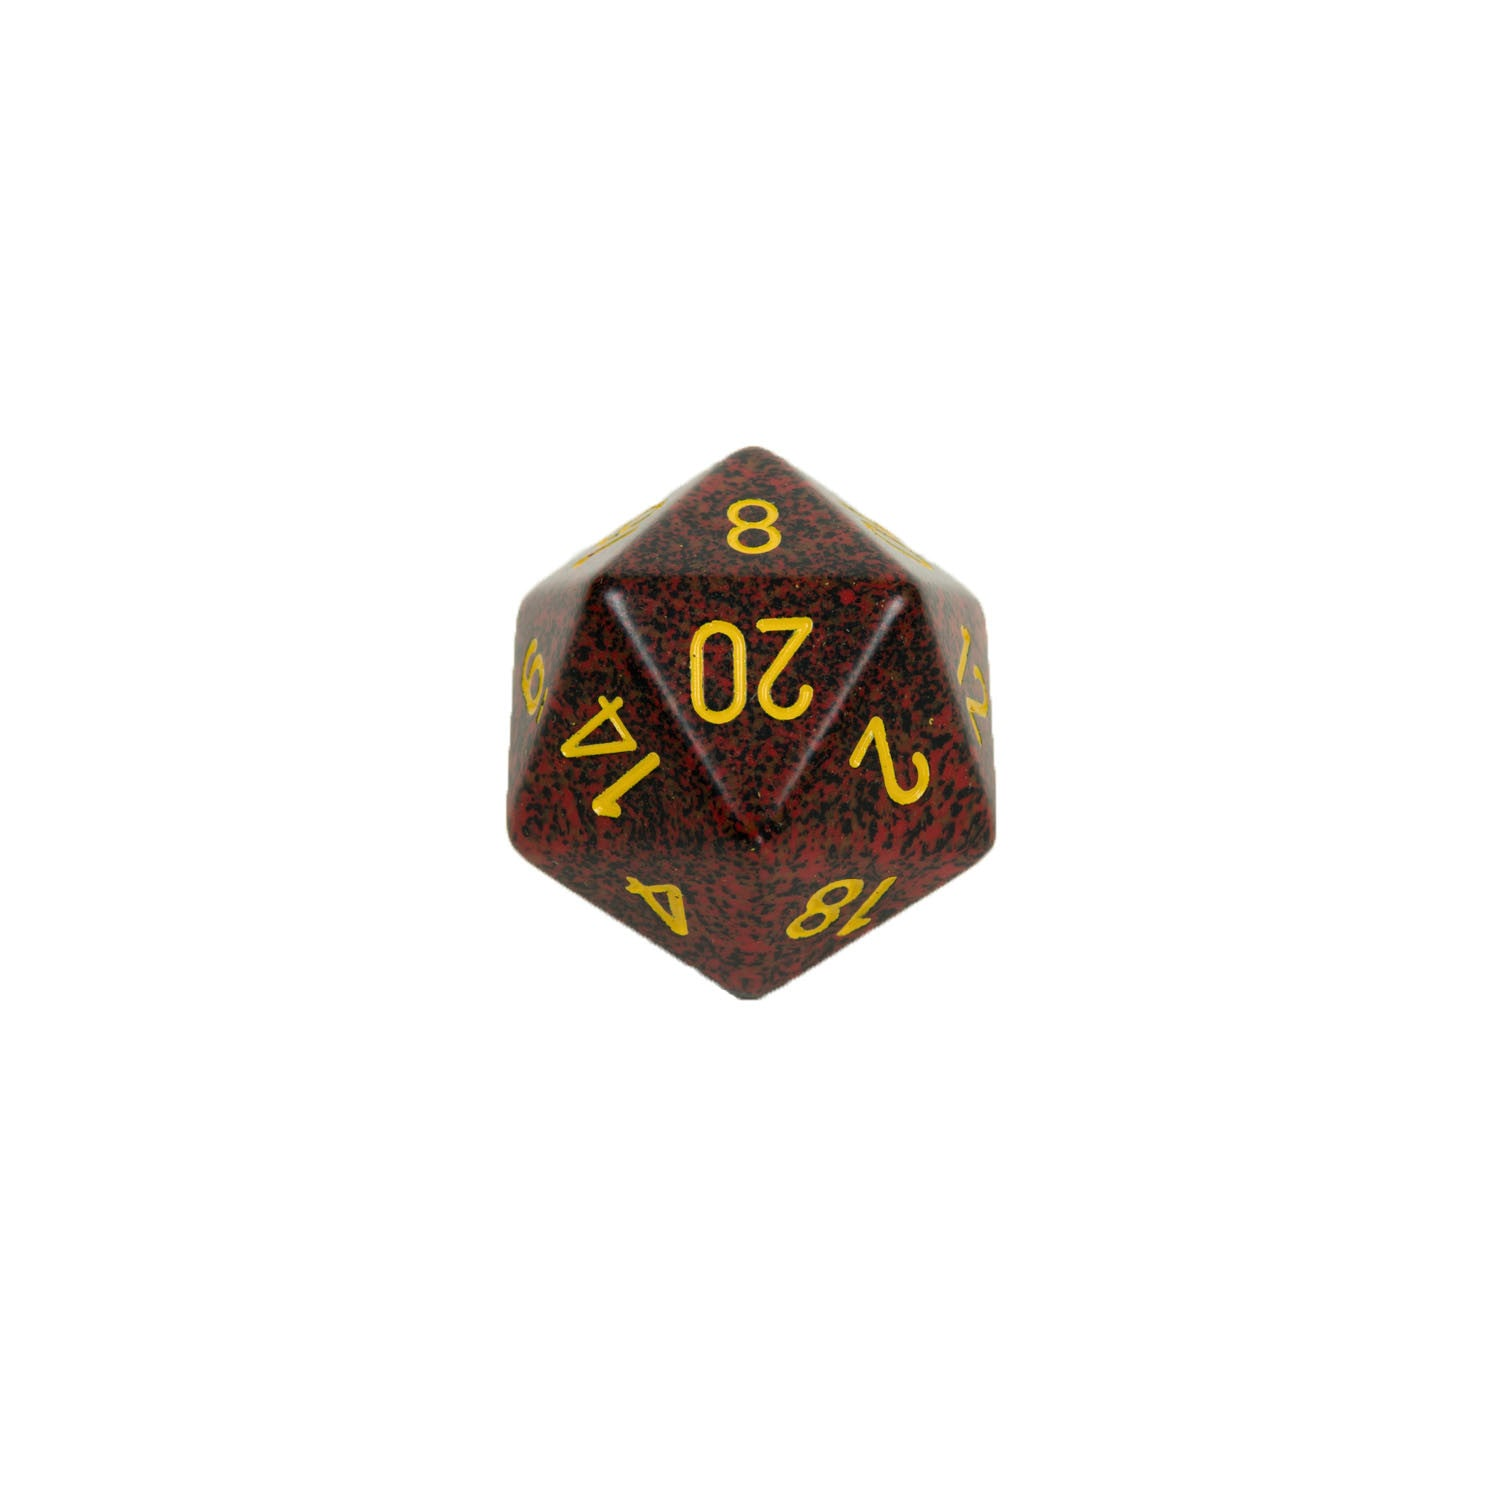 Chessex CHXXS2079 Mercury™ Speckled 34mm d20 single